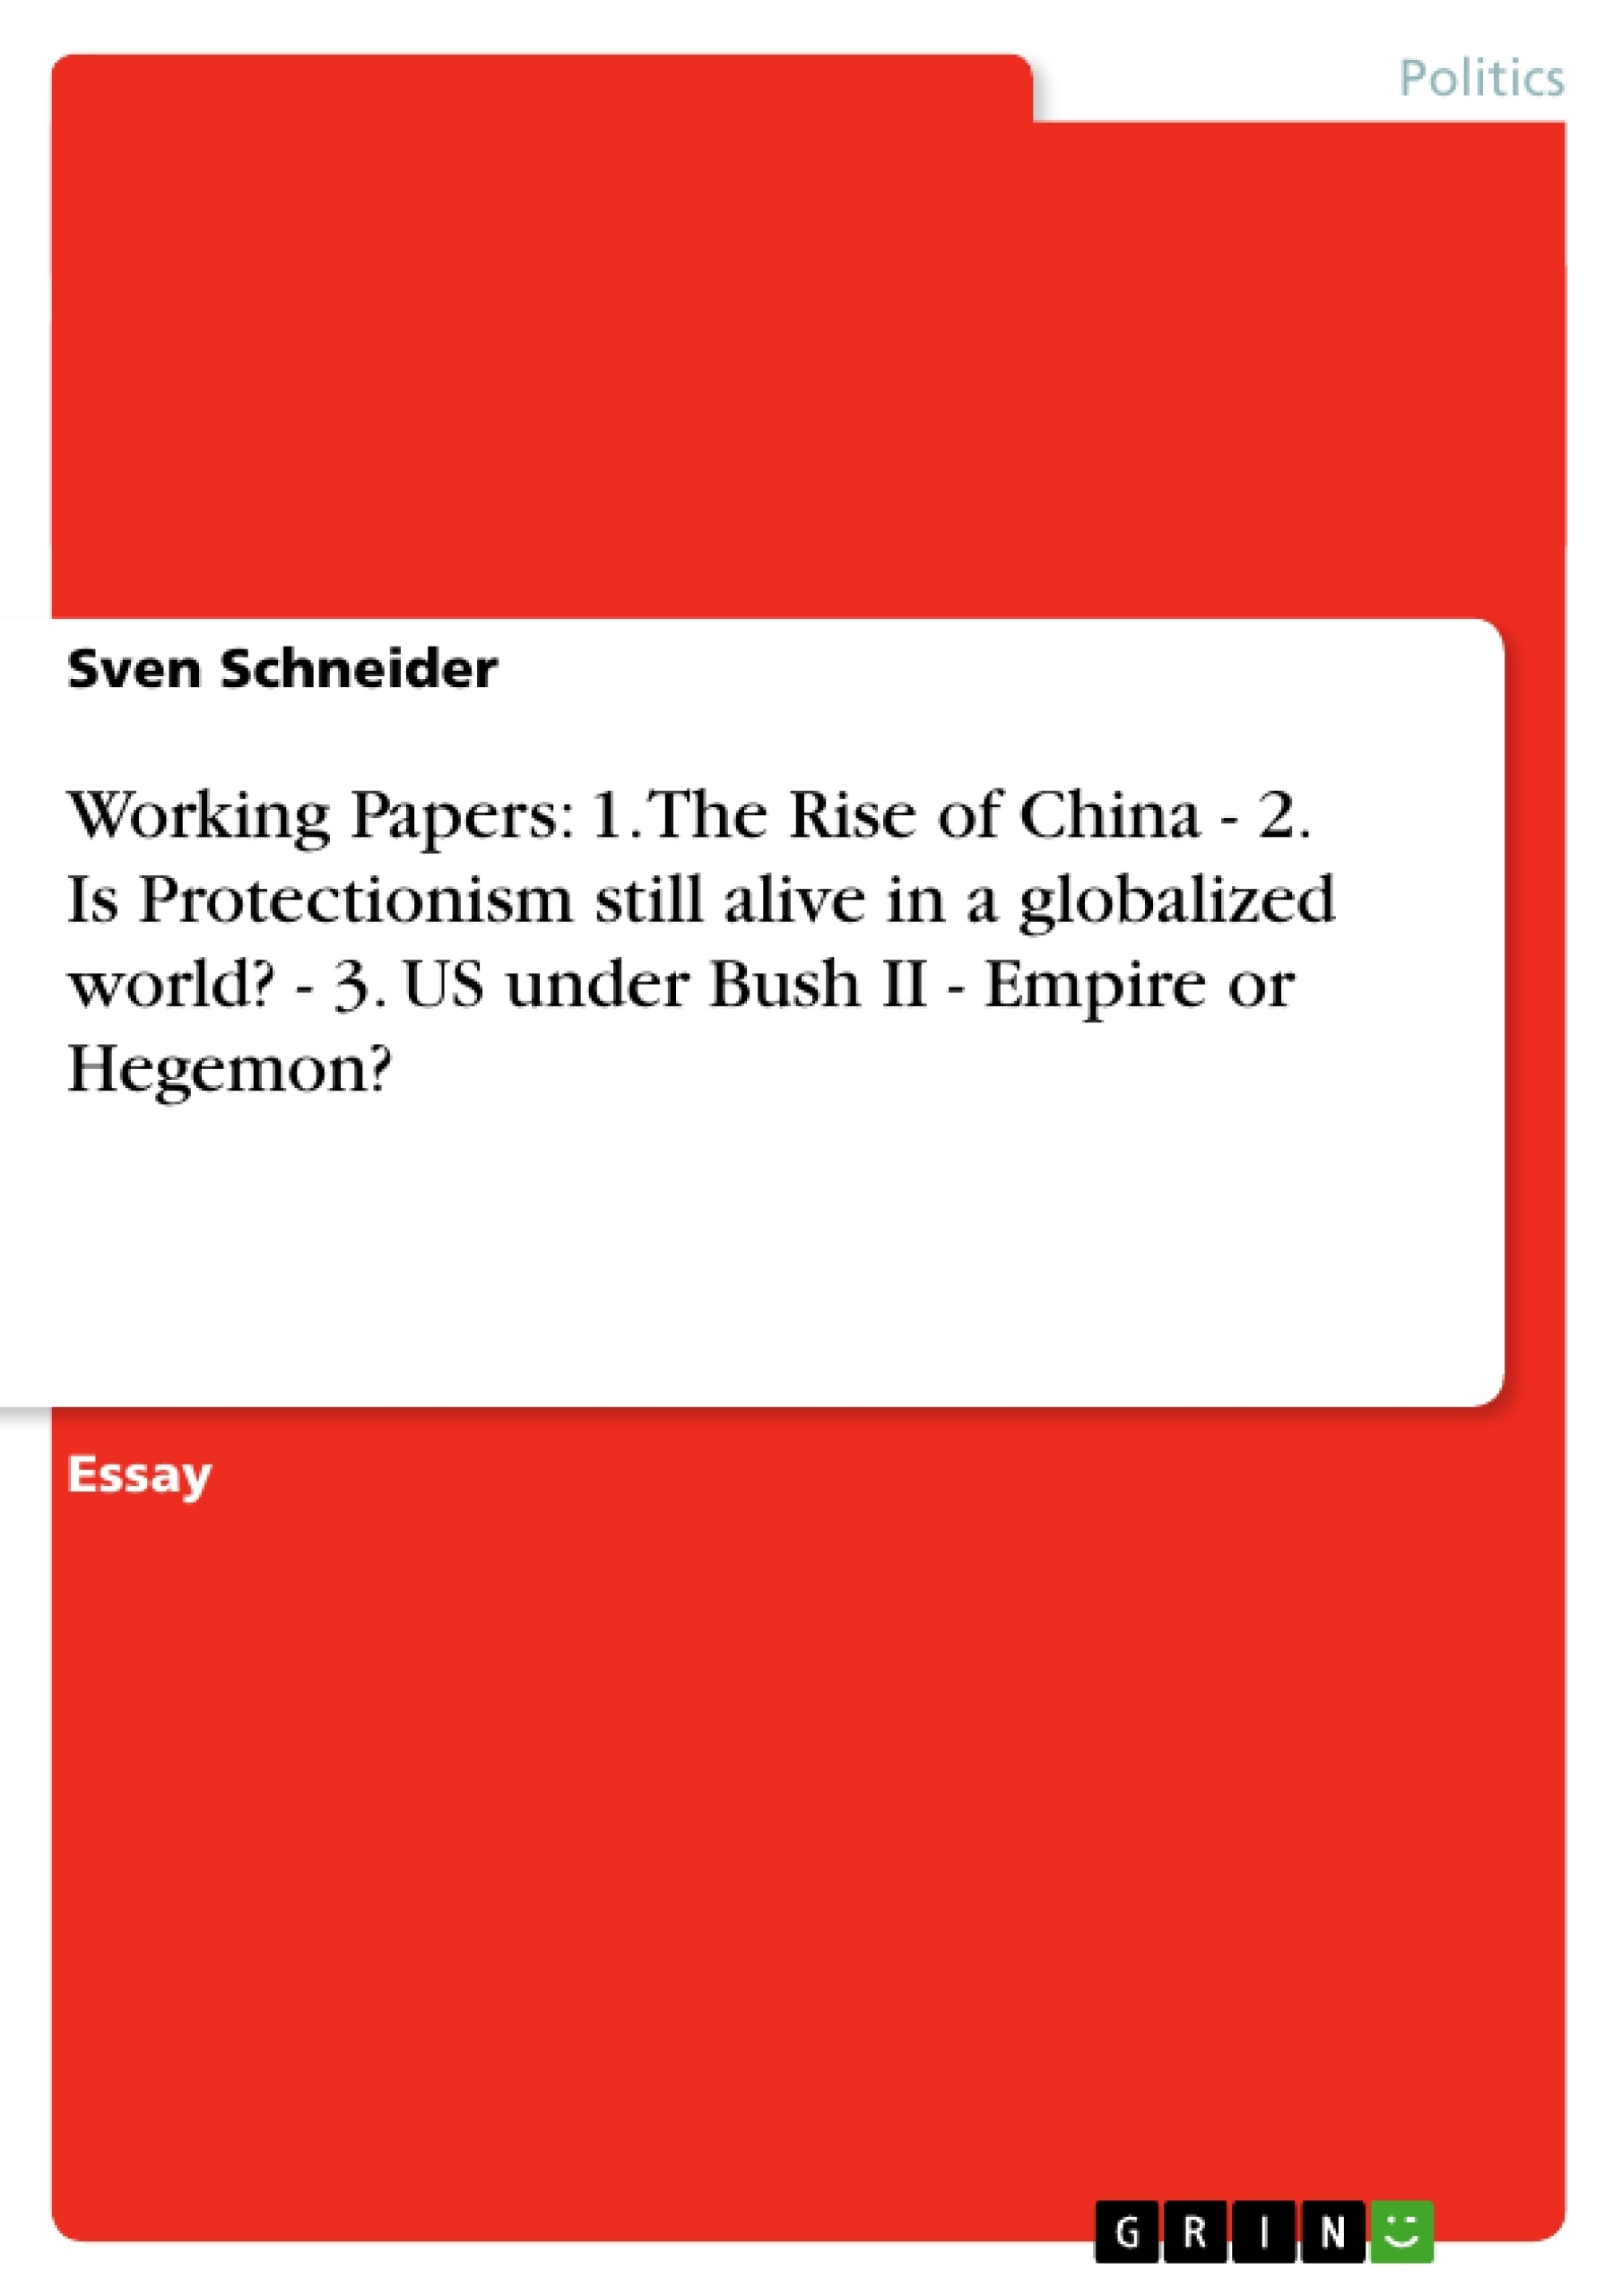 Title: Working Papers: 1. The Rise of China  - 2. Is Protectionism still alive in a globalized world? - 3. US under Bush II - Empire or Hegemon?